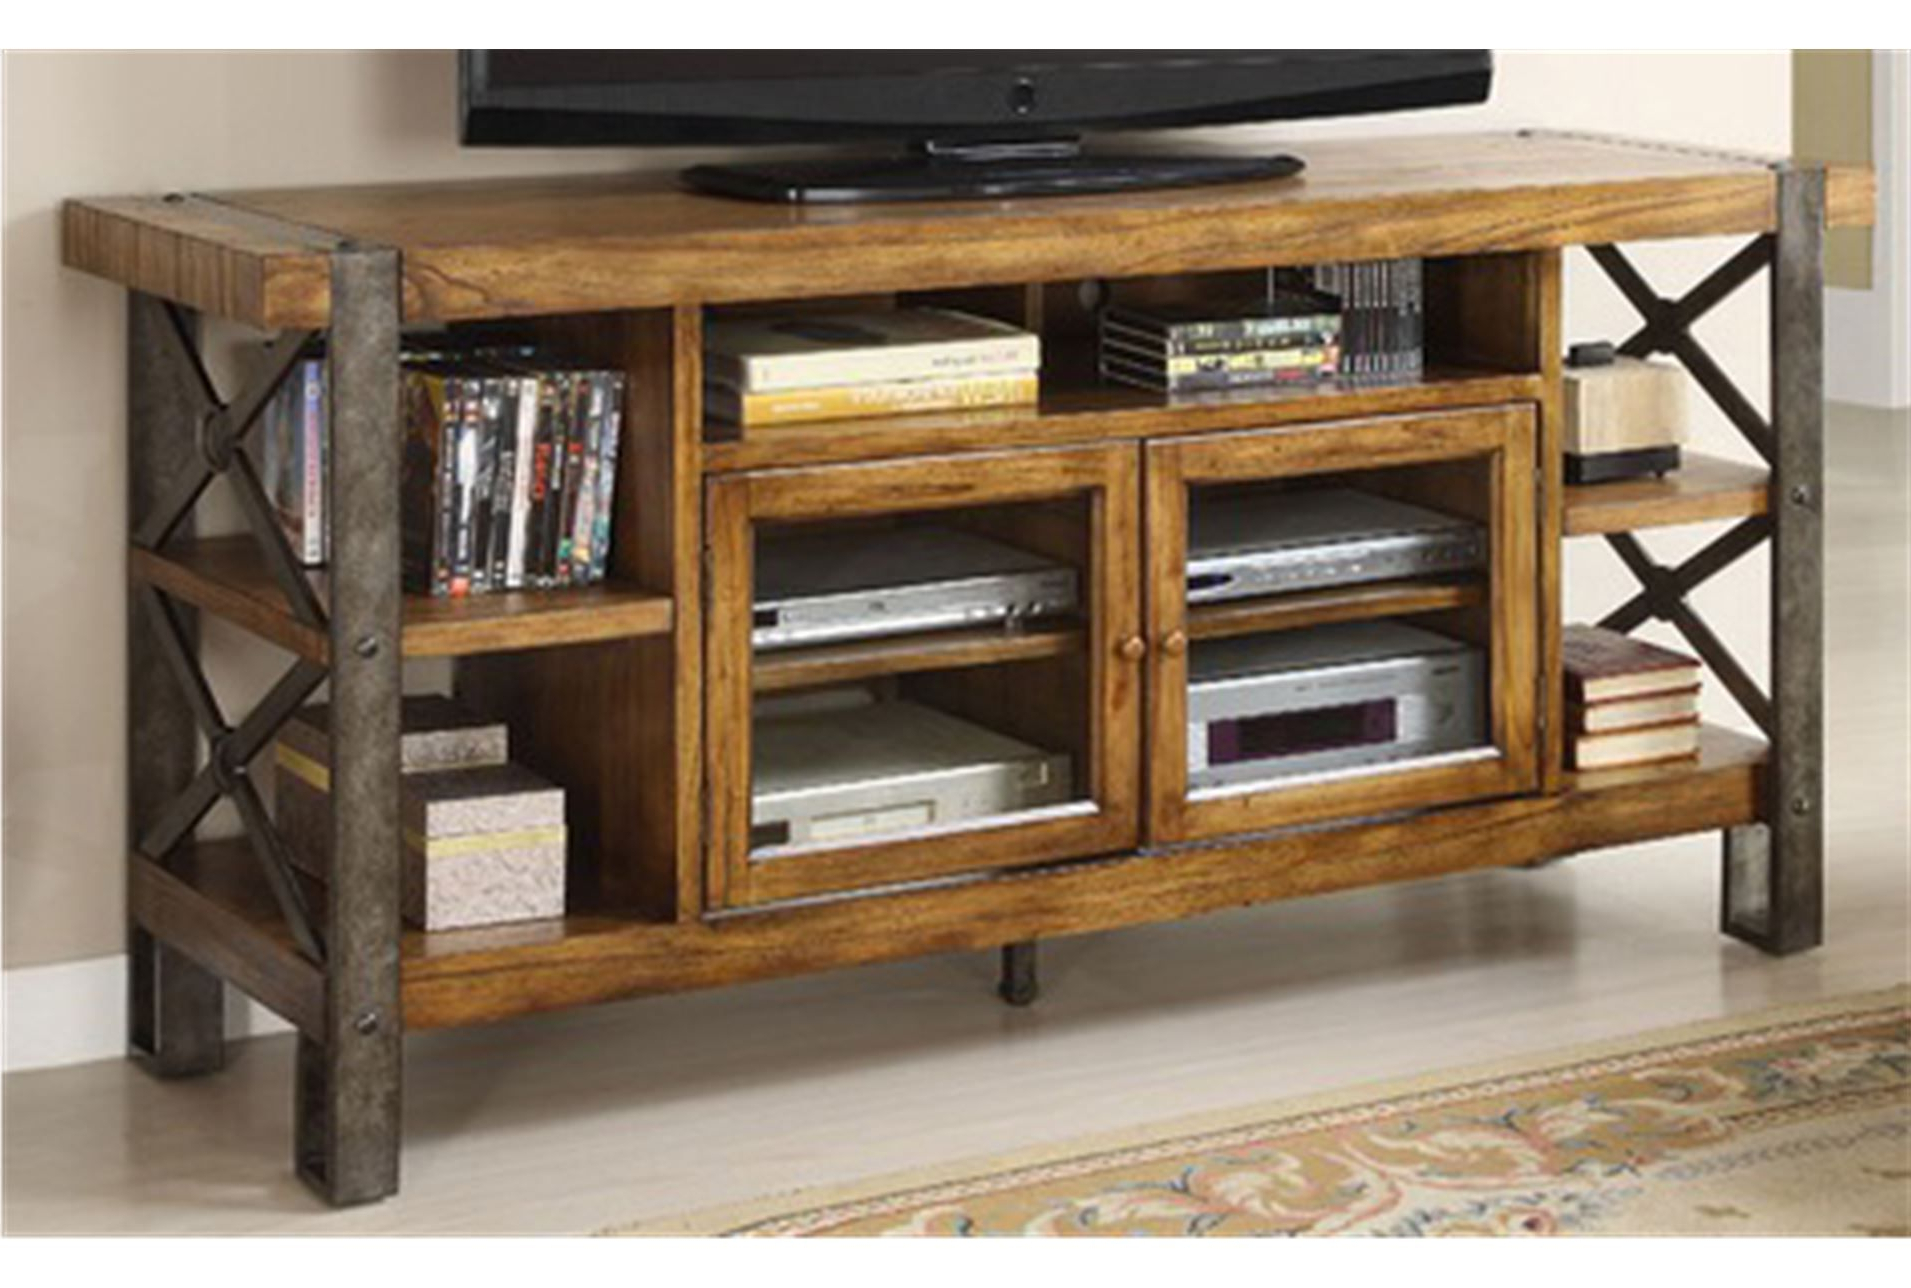 Marley 68 Inch Tv Console | Dos Lagos/ Re/max | Pinterest | Tvs Regarding Sinclair White 68 Inch Tv Stands (Gallery 19 of 20)